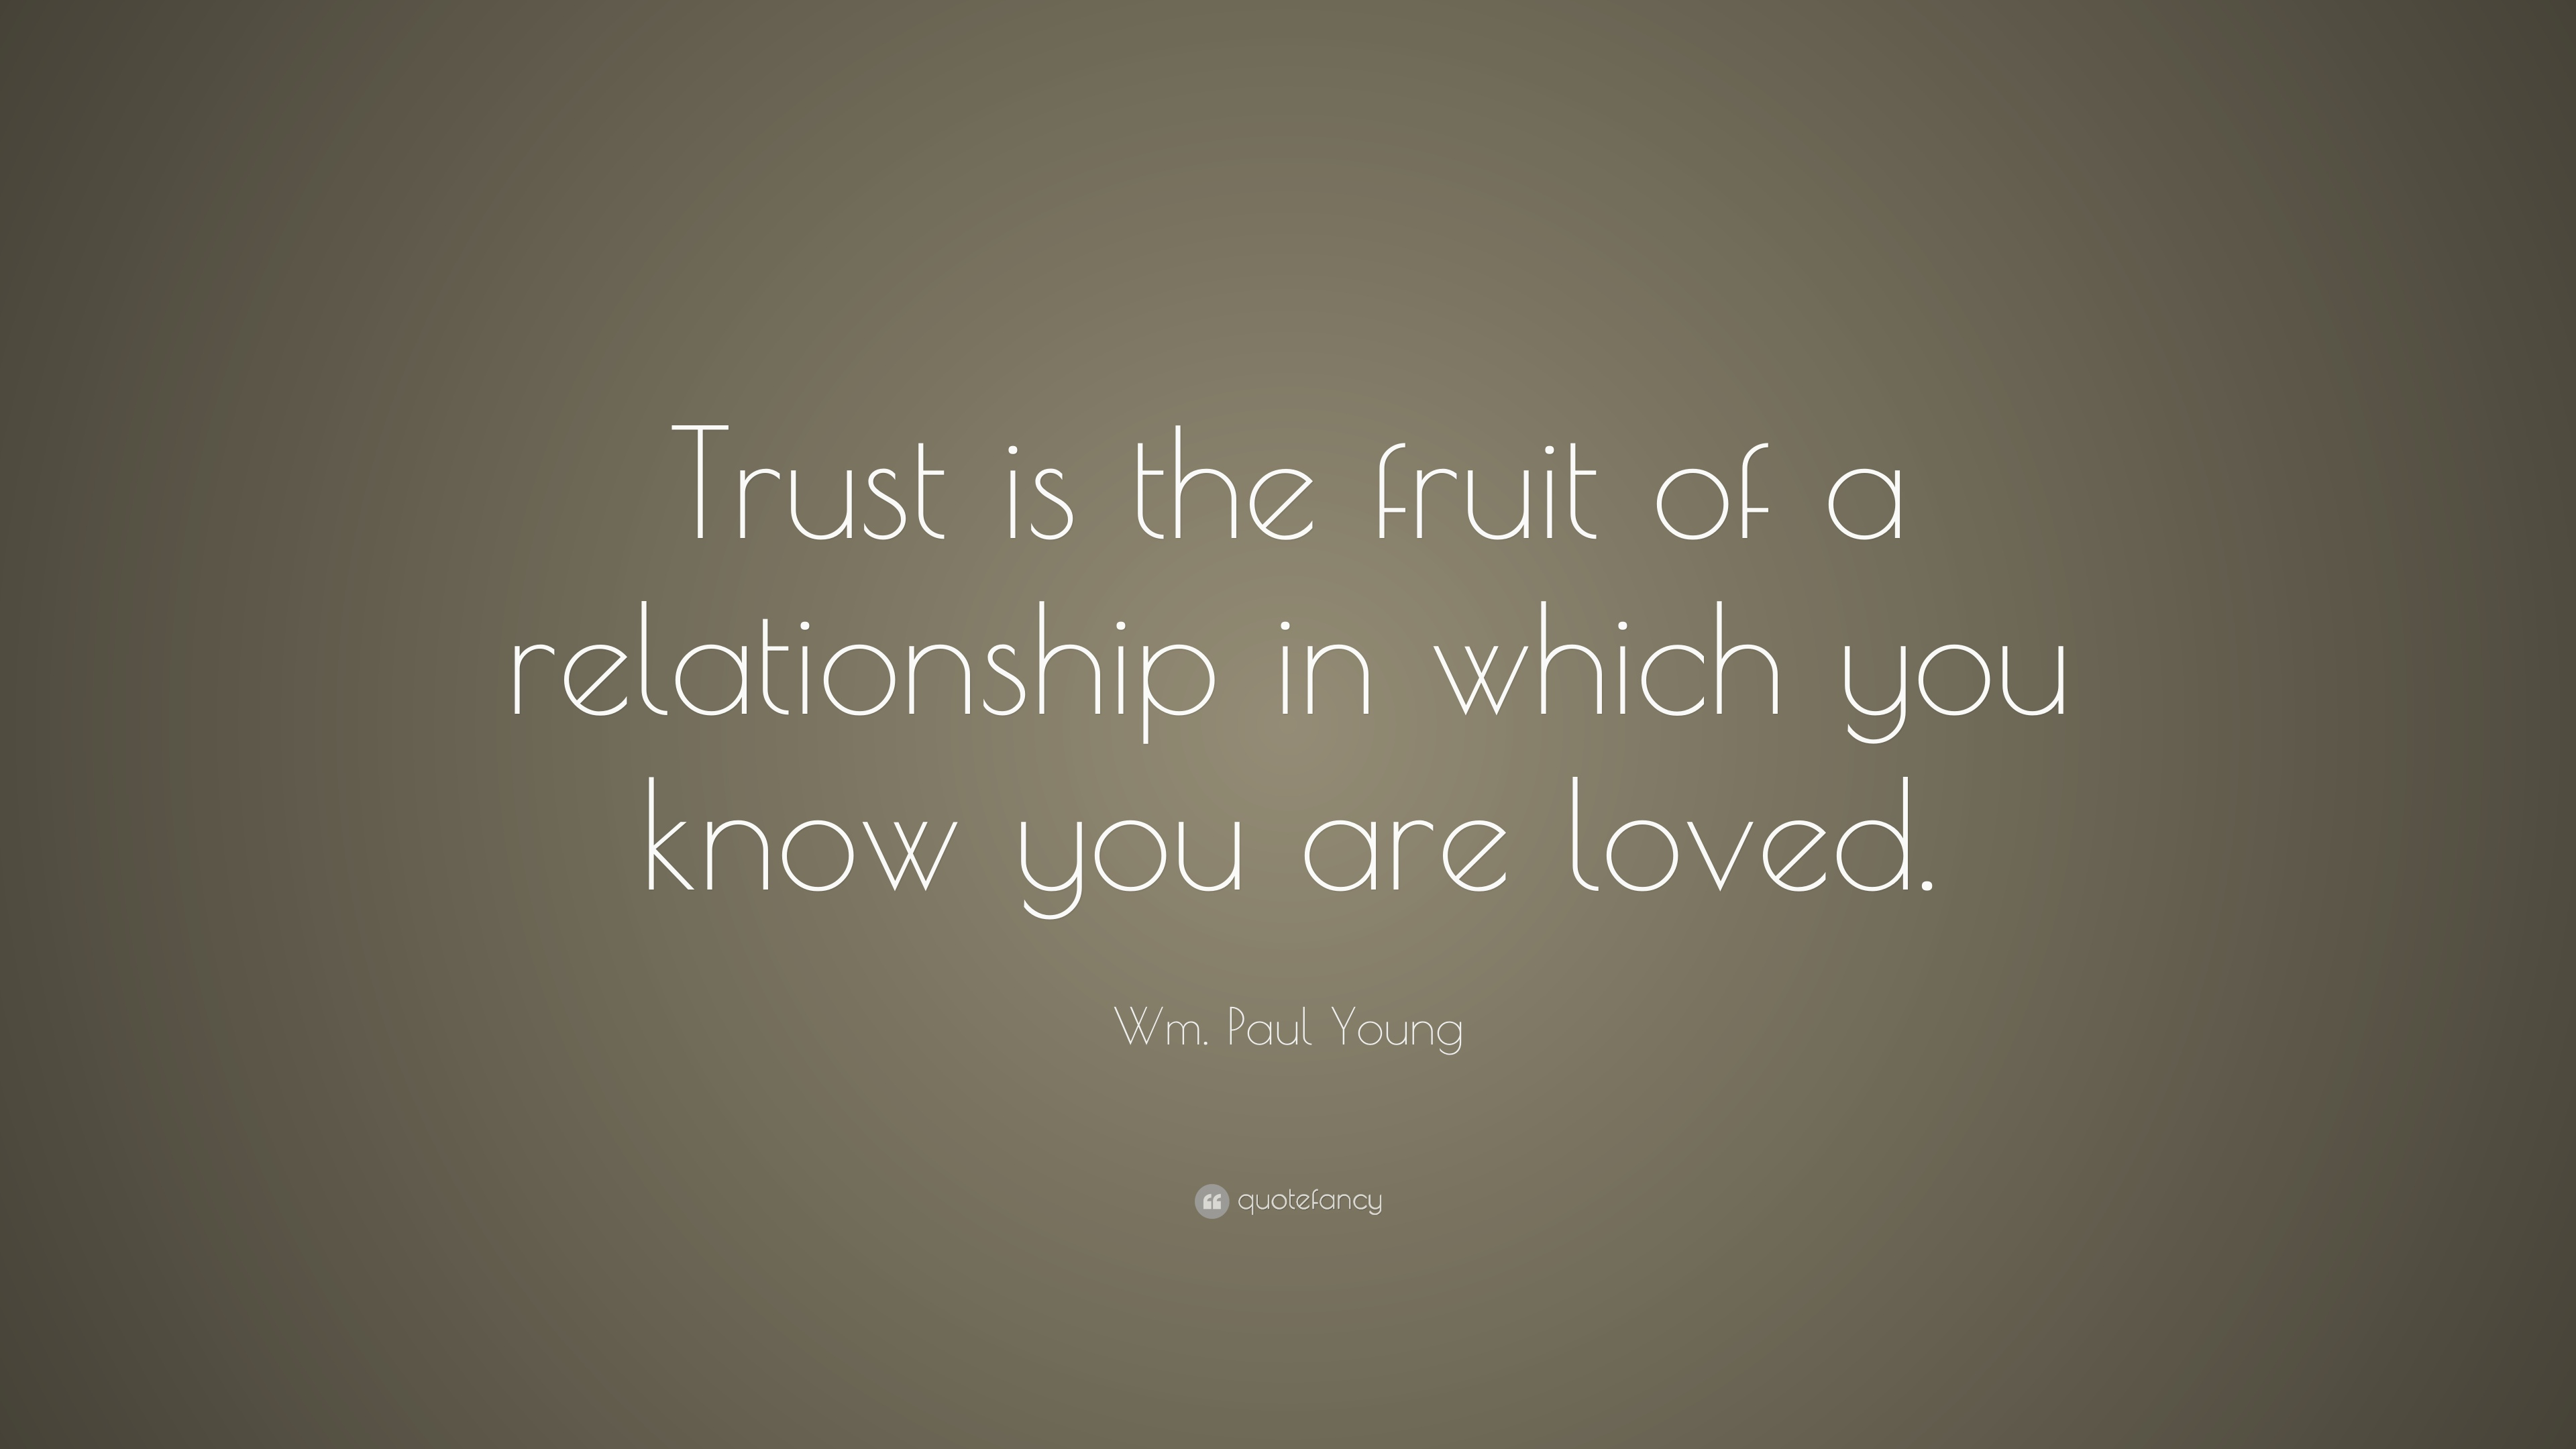 Wm Paul Young Quote Trust Is The Fruit Of A Relationship In Which